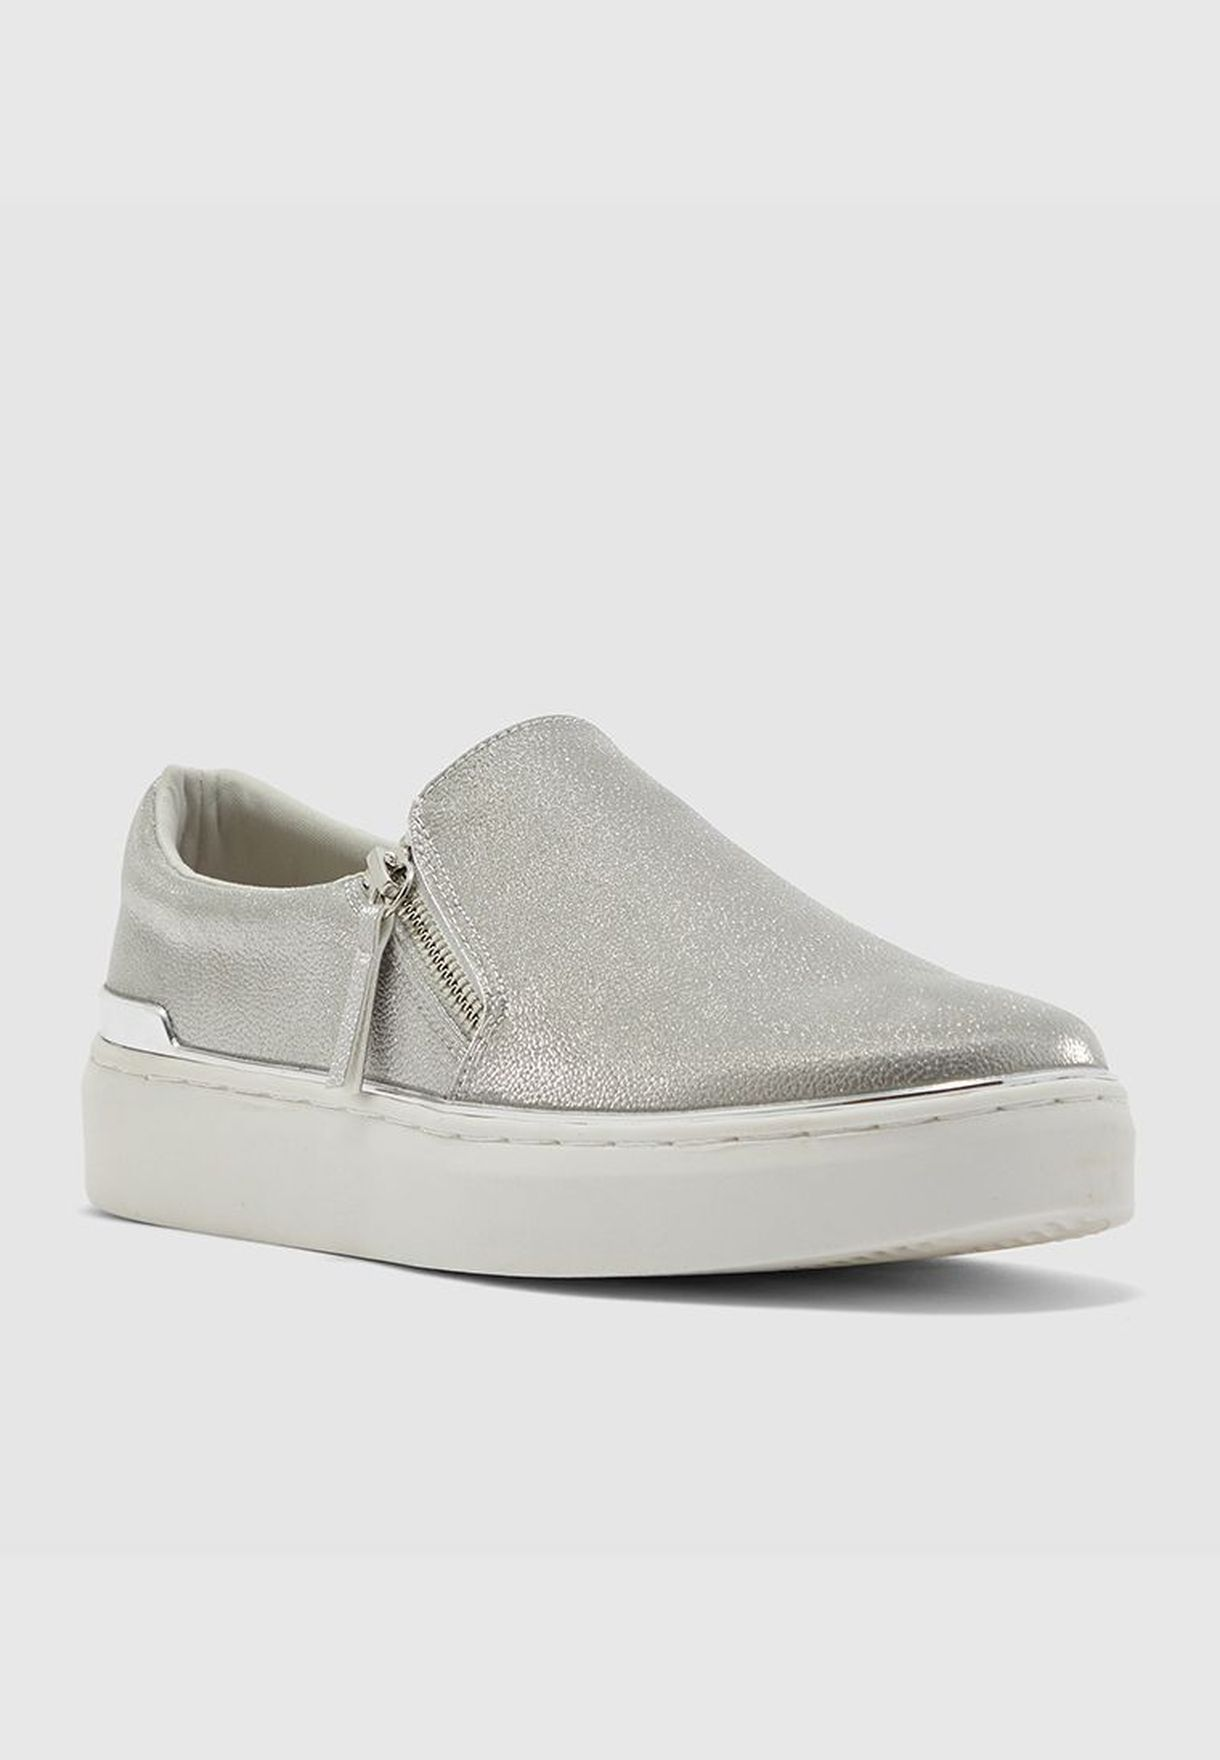 ARIANA Comfort Shoes